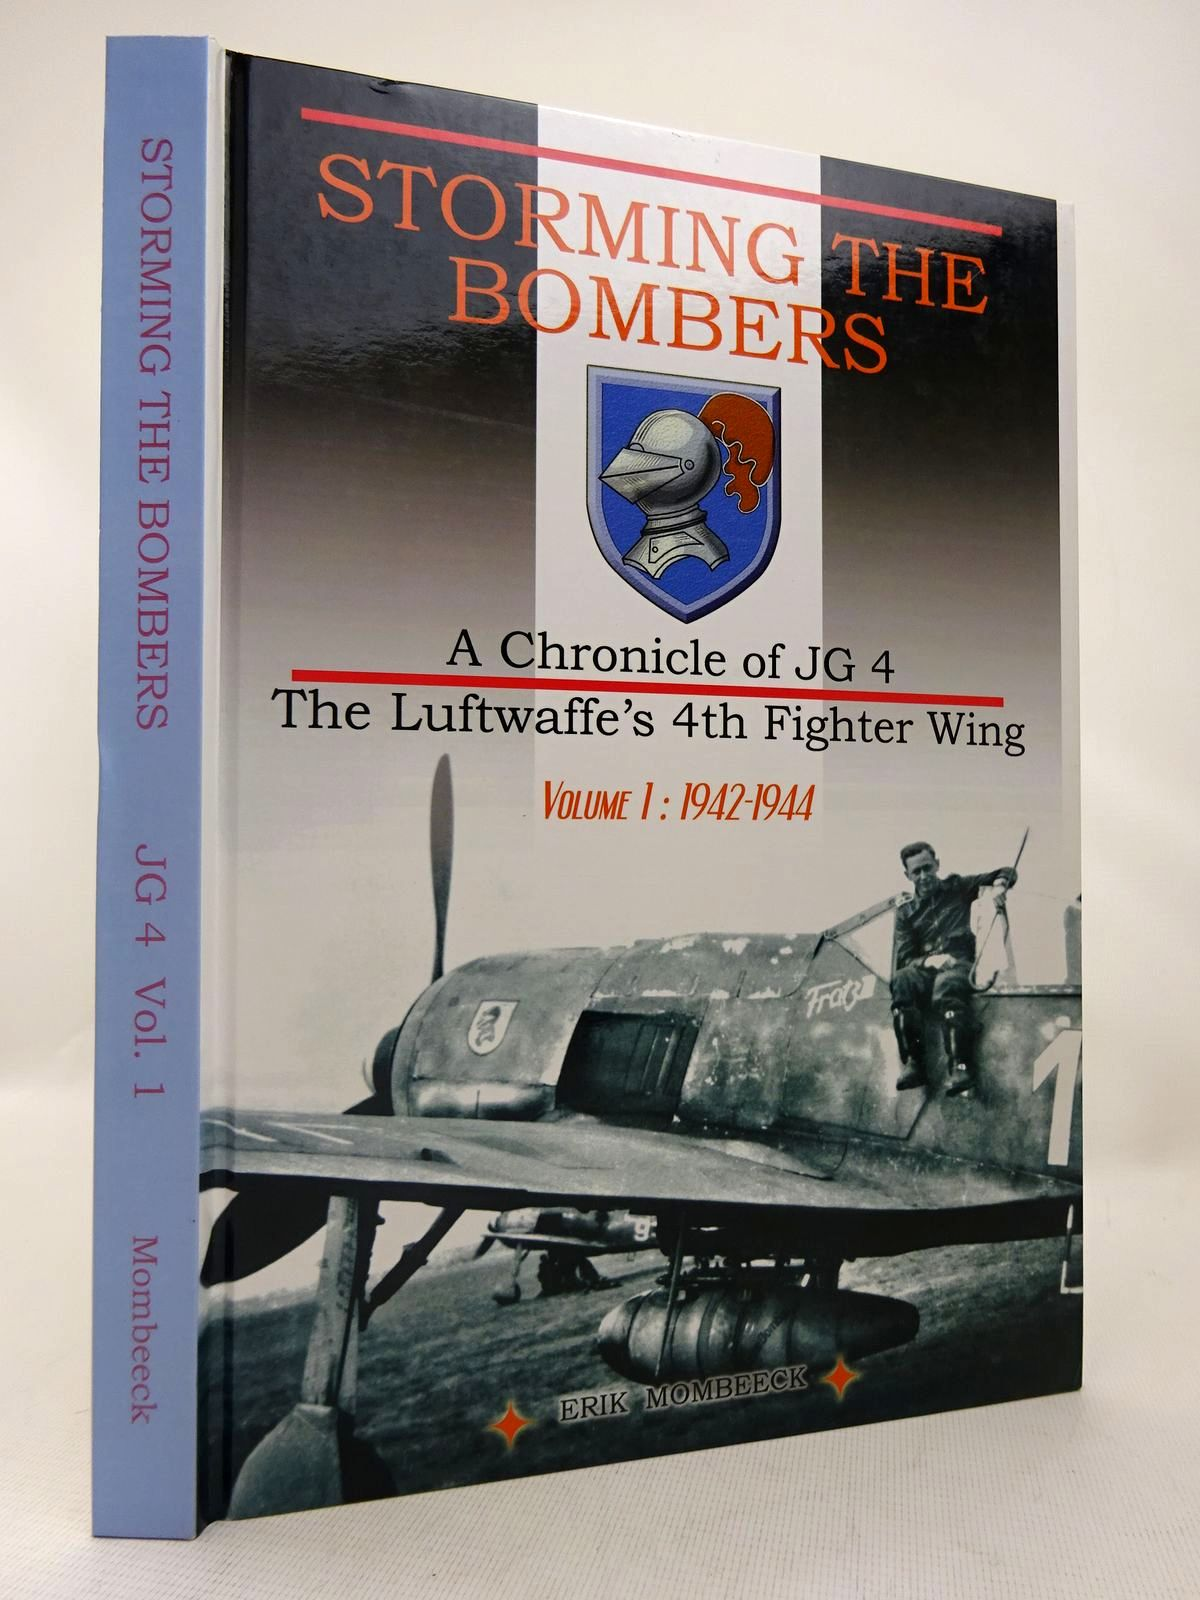 Photo of STORMING THE BOMBERS: A CHRONICLE OF JG 4 THE LUFTWAFFE'S 4TH FIGHTER WING VOLUME 1 1942-1944 written by Mombeek, Eric published by A.S.B.L. (STOCK CODE: 1816579)  for sale by Stella & Rose's Books